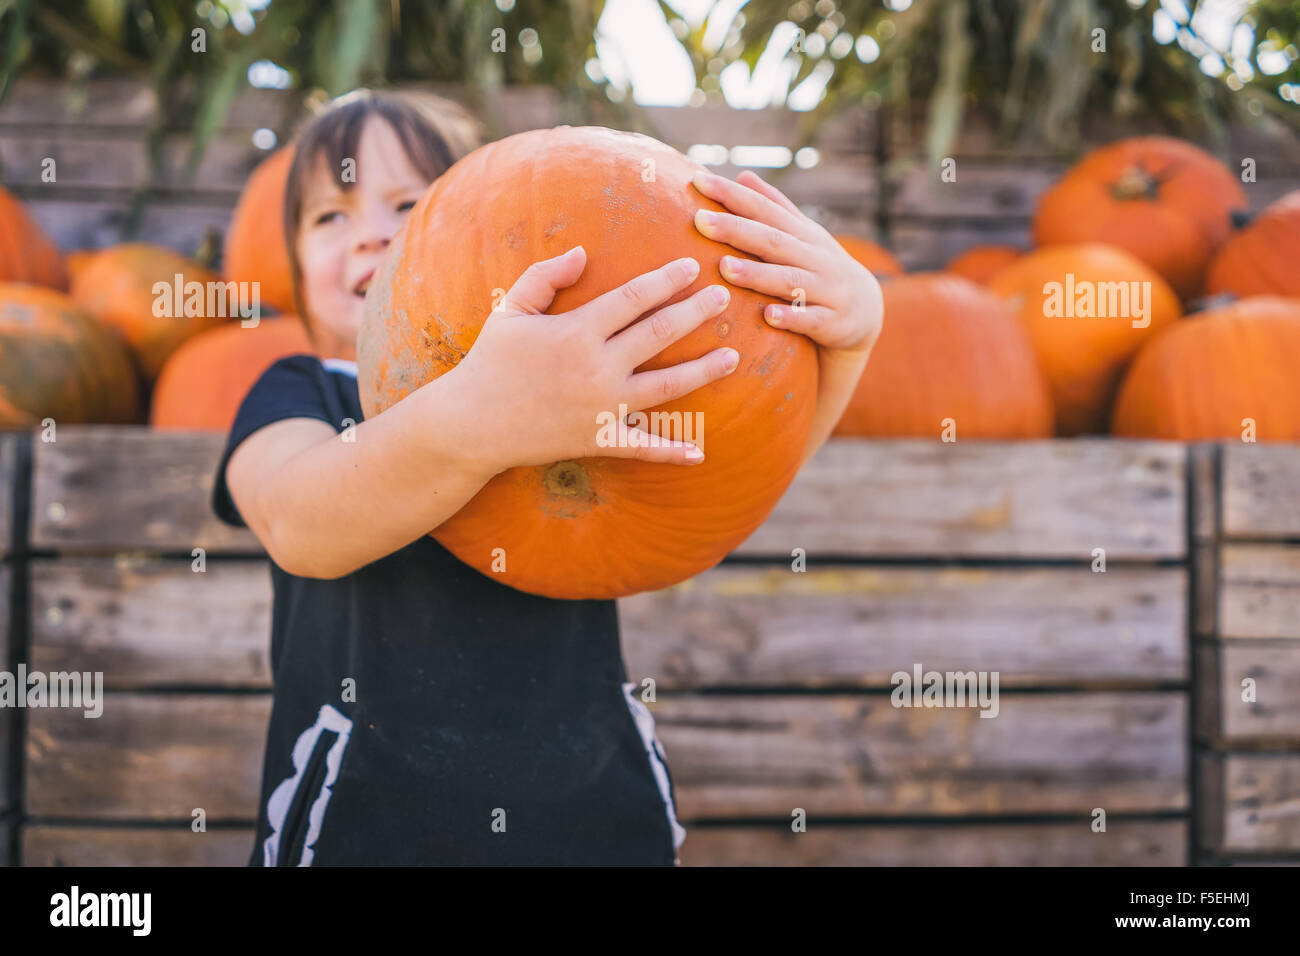 Girl holding large pumpkin at pumpkin farm - Stock Image